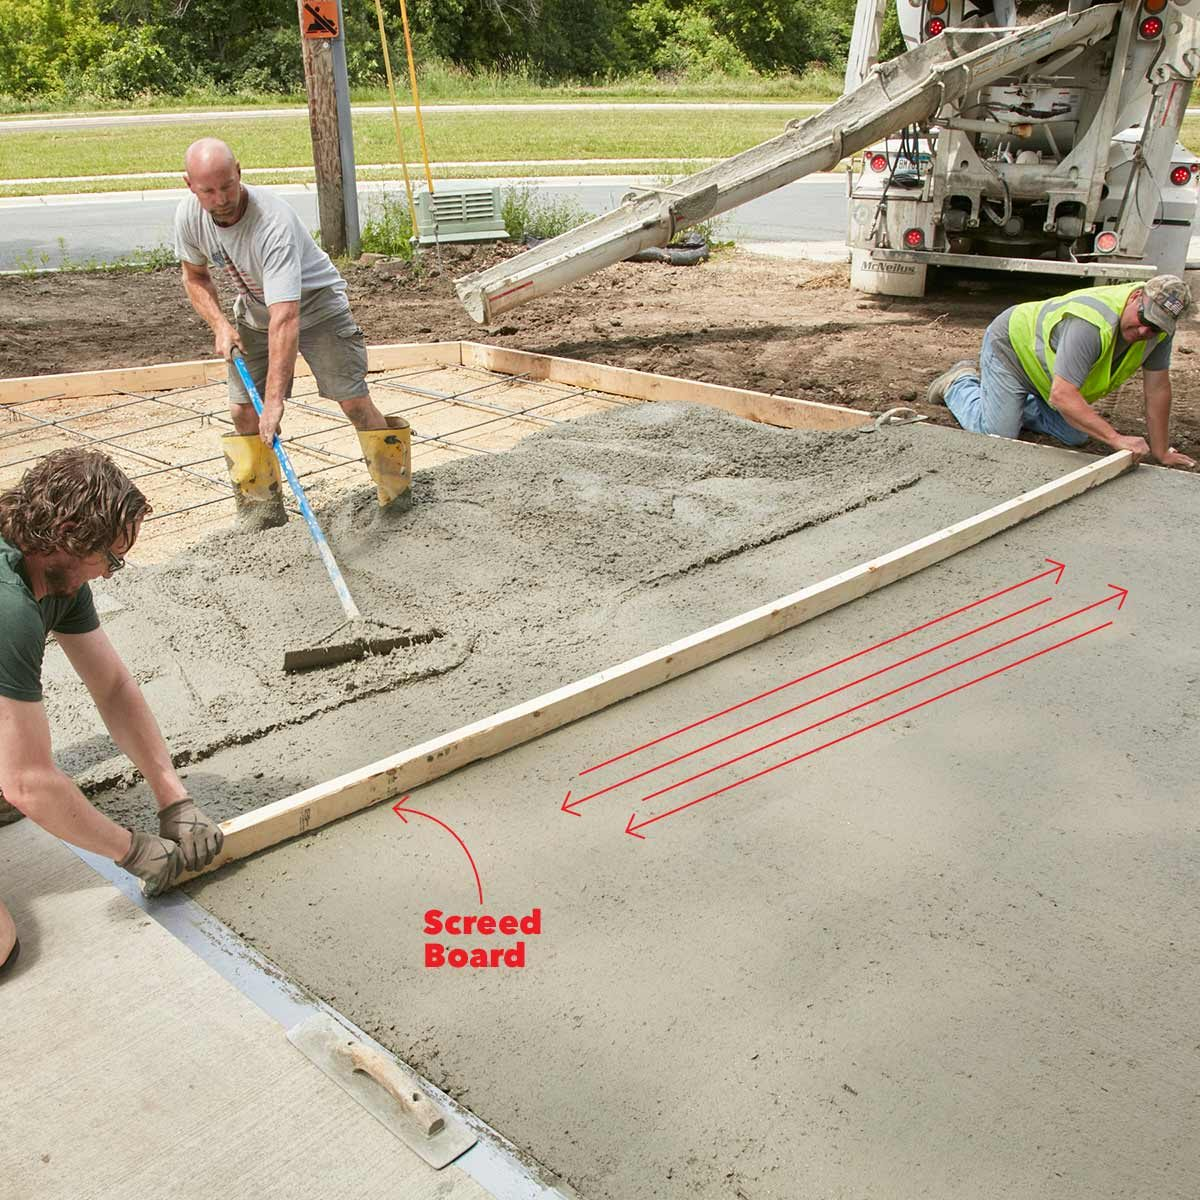 Screed board slide